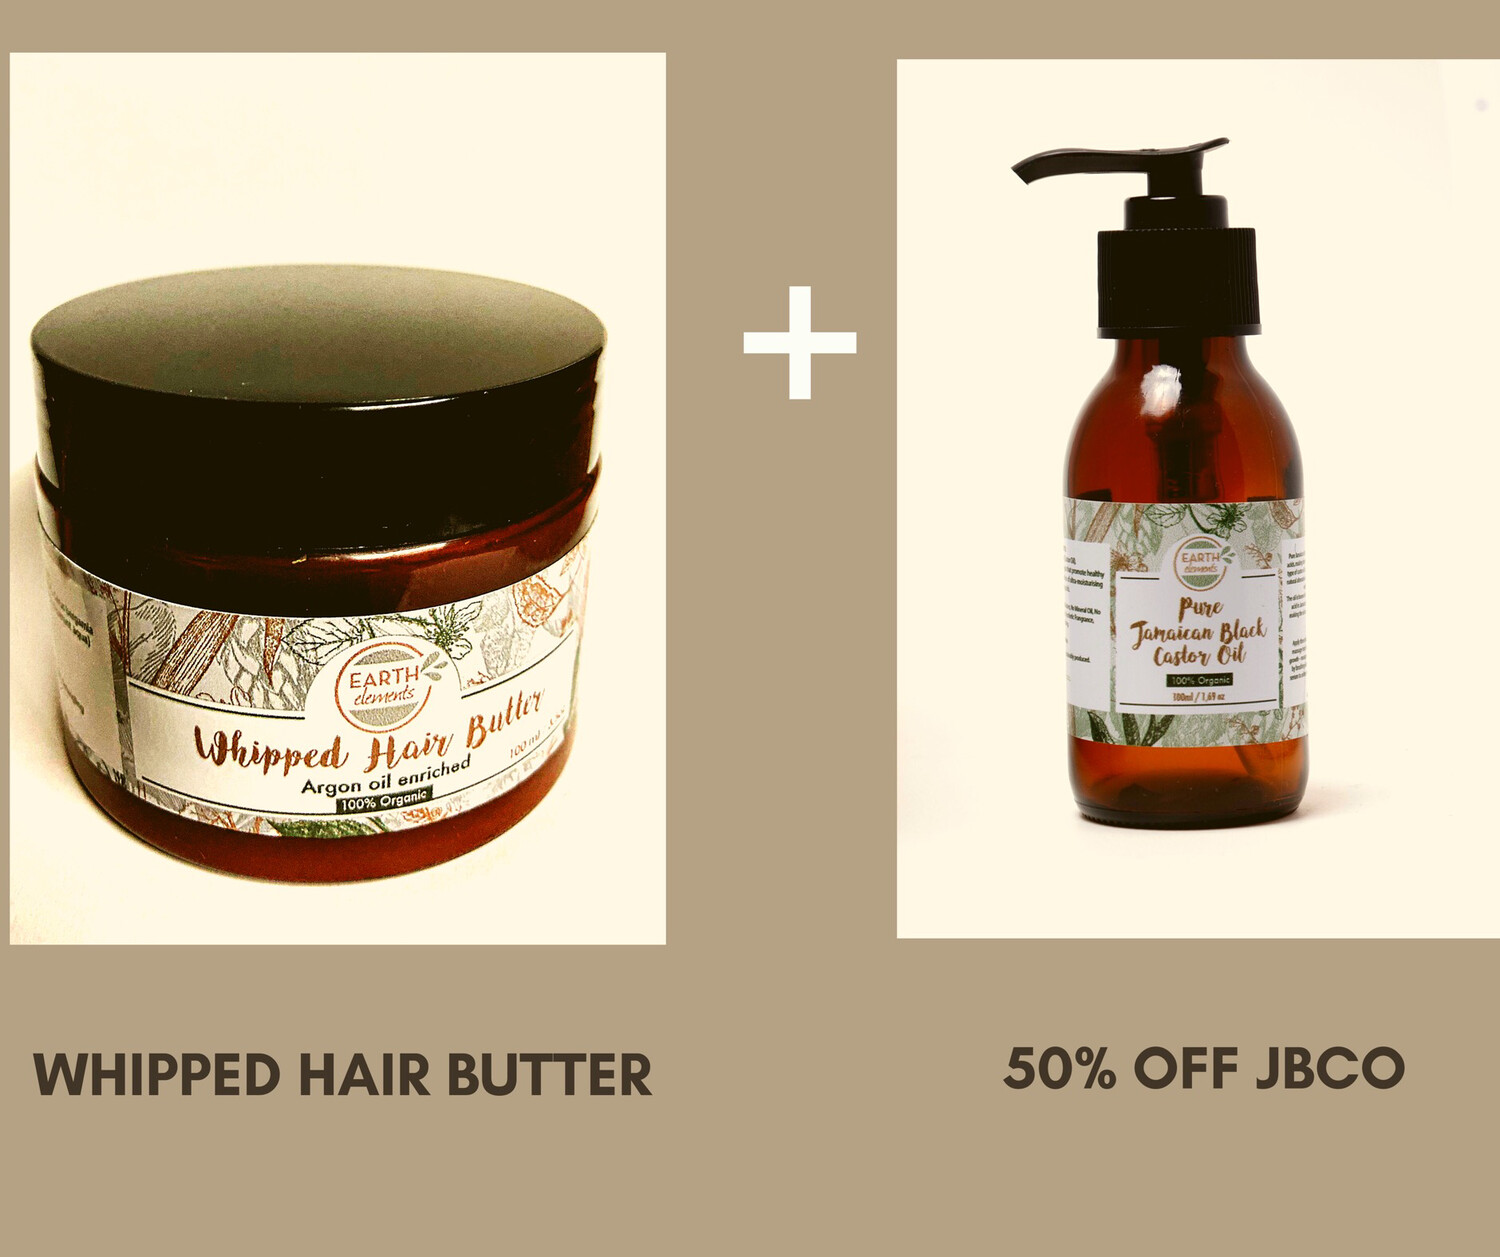 Whipped Hair Butter (100ml) + 50% Off JBCO